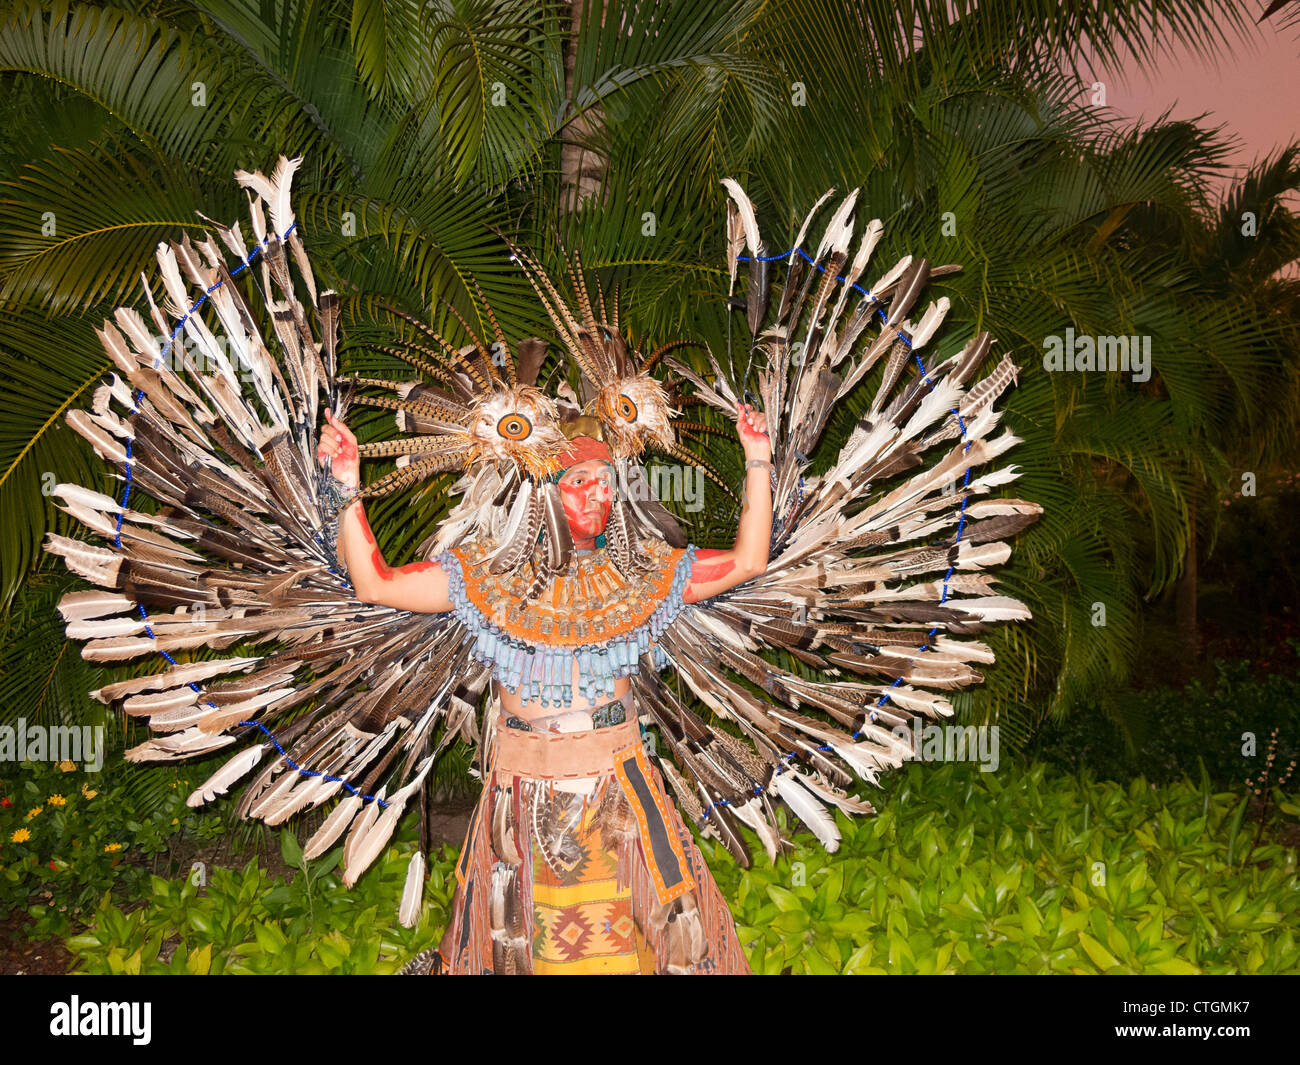 Owl Dancer, representing the creature the Maya revered as a Wise Counselor. Riviera Maya, Yucatan, Mexico. - Stock Image